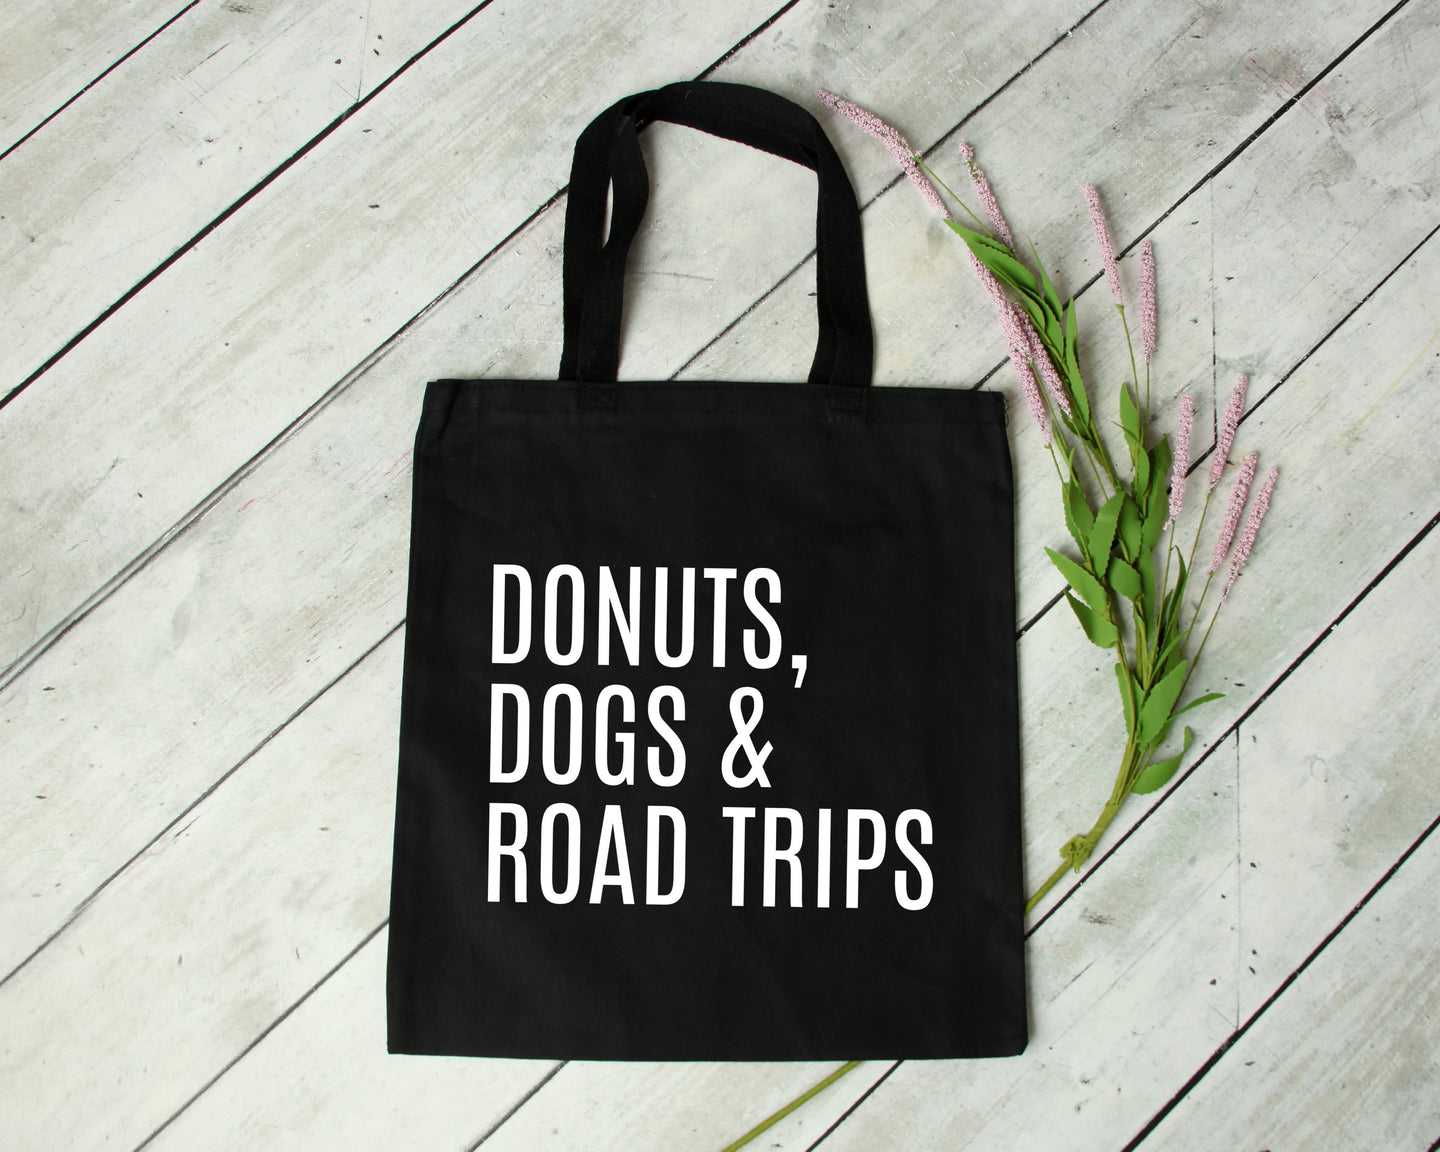 Donuts Dogs & Road Trips reusable black canvas tote bag by Modern Trail